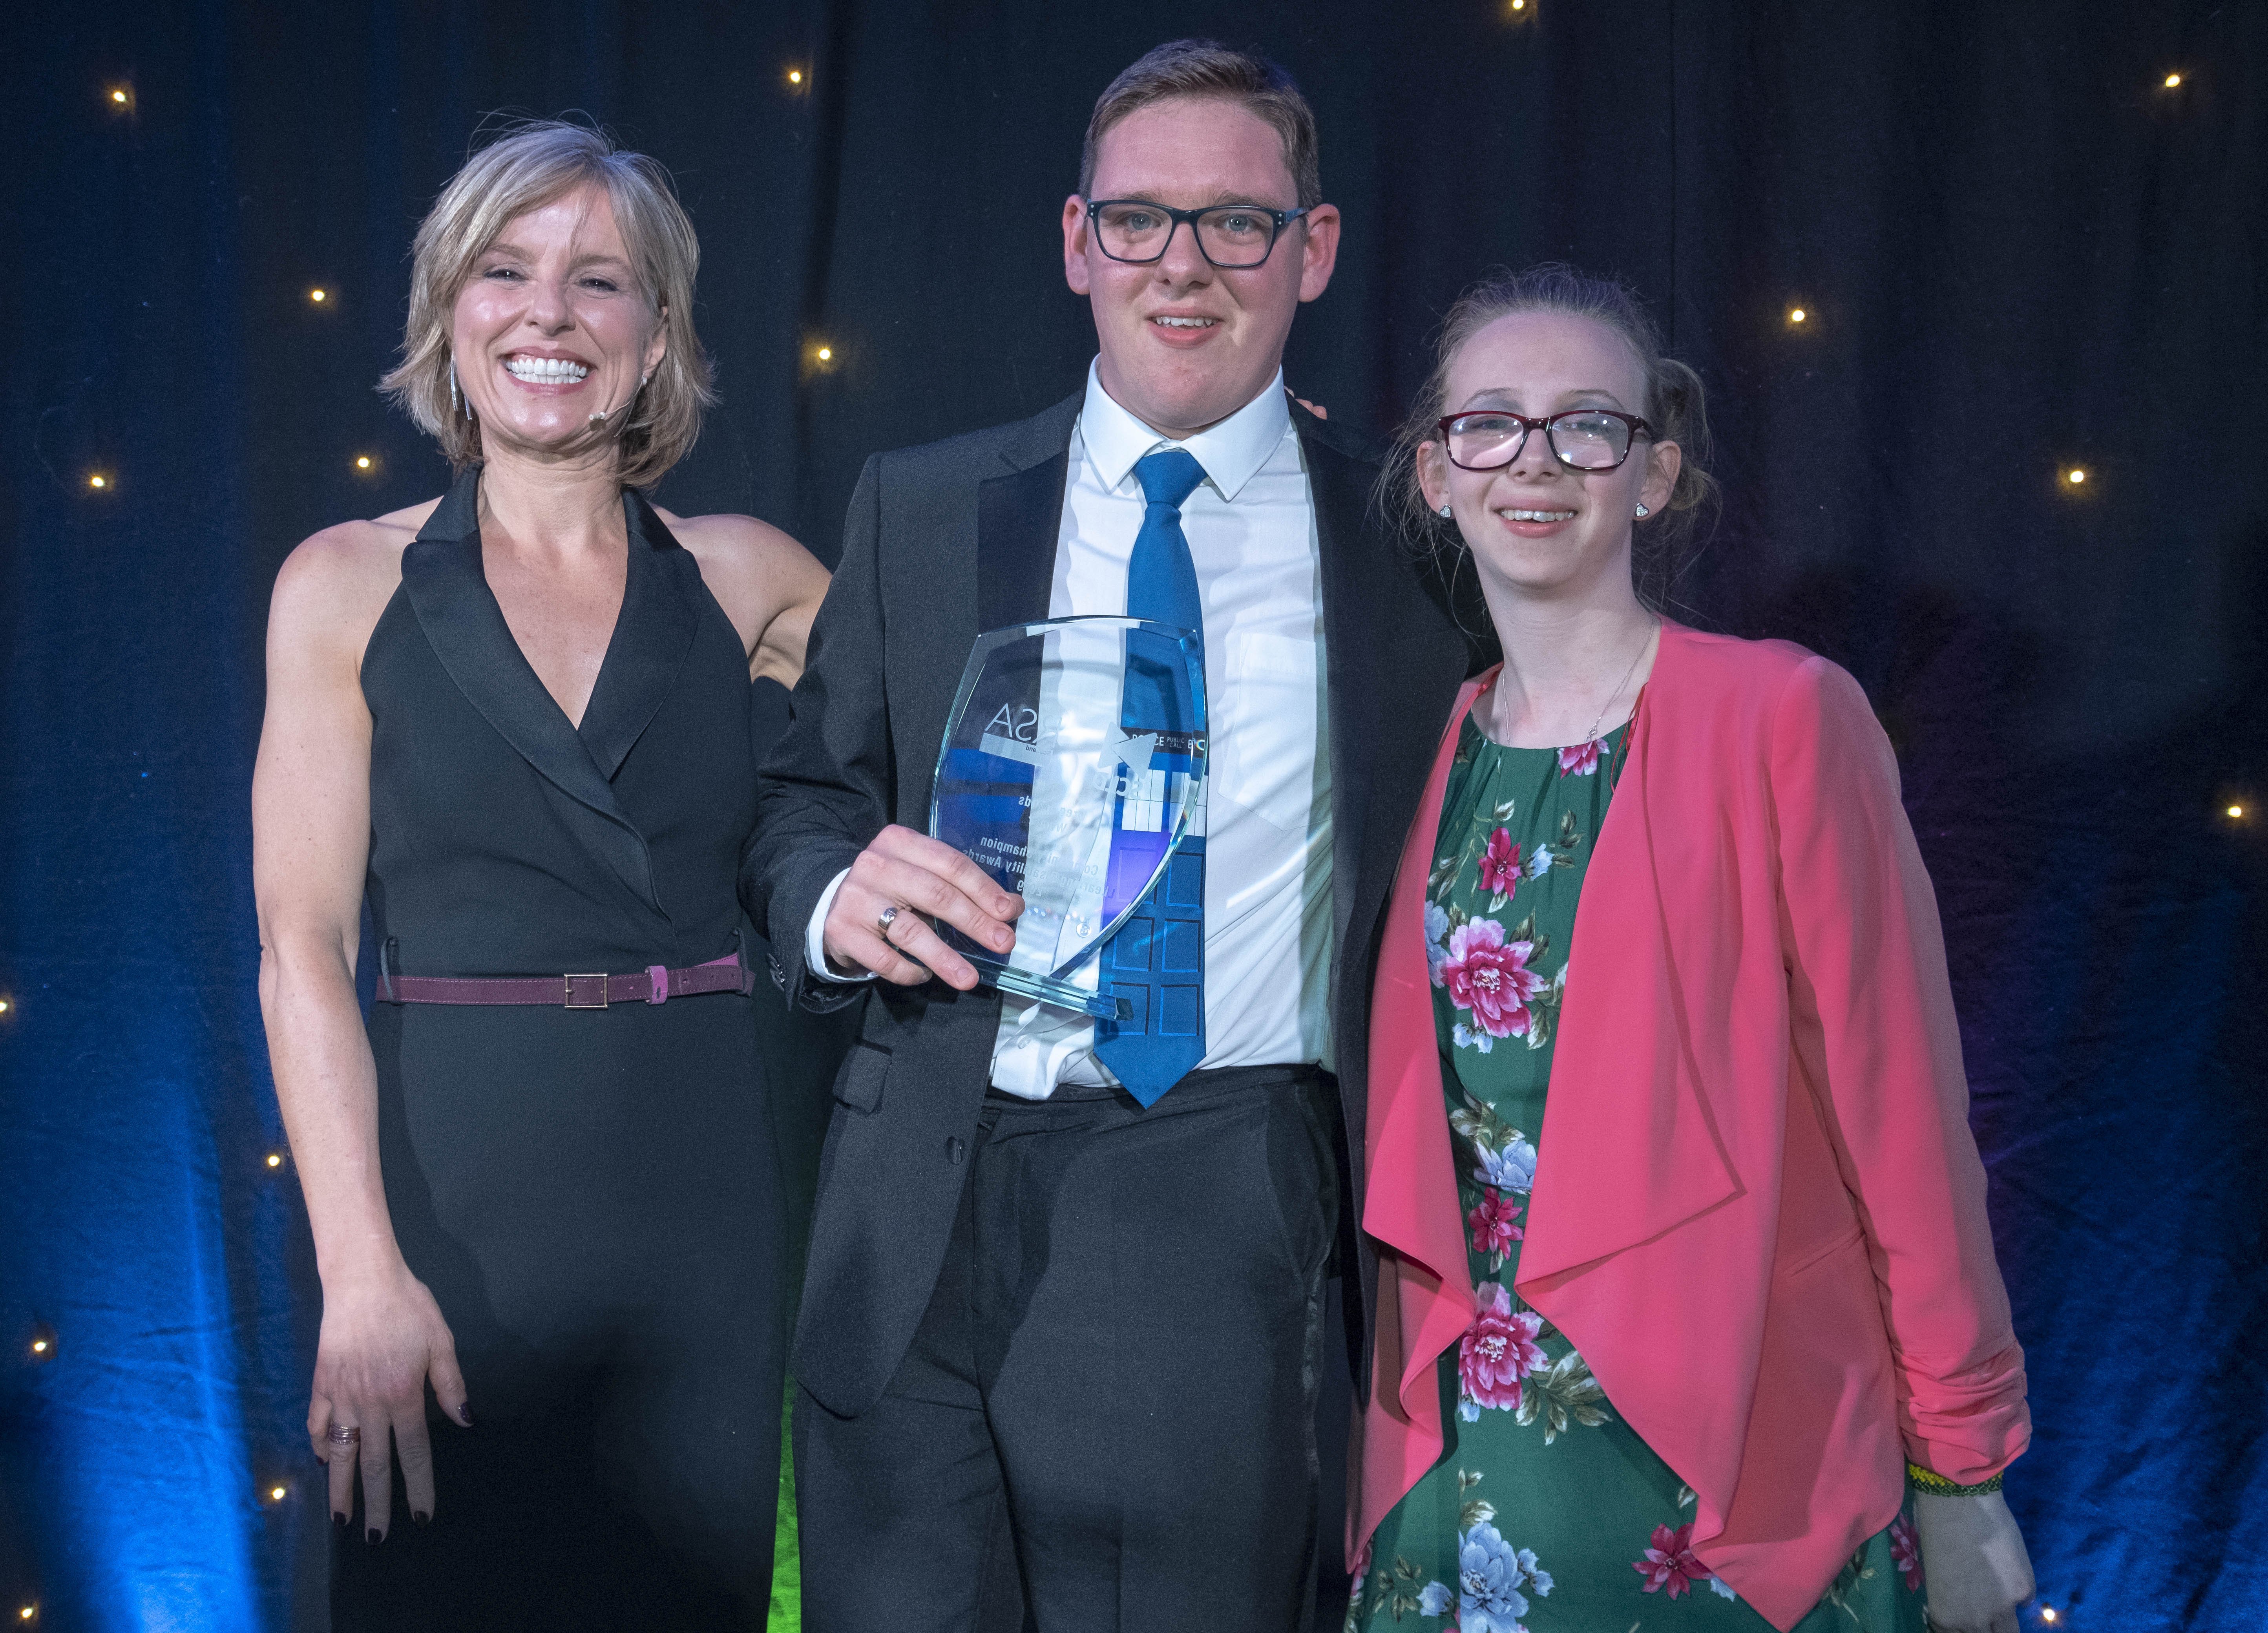 Greg Brands with Rona Dougall, left, the host of the awards, and Leeanne Clark, the award presenter.